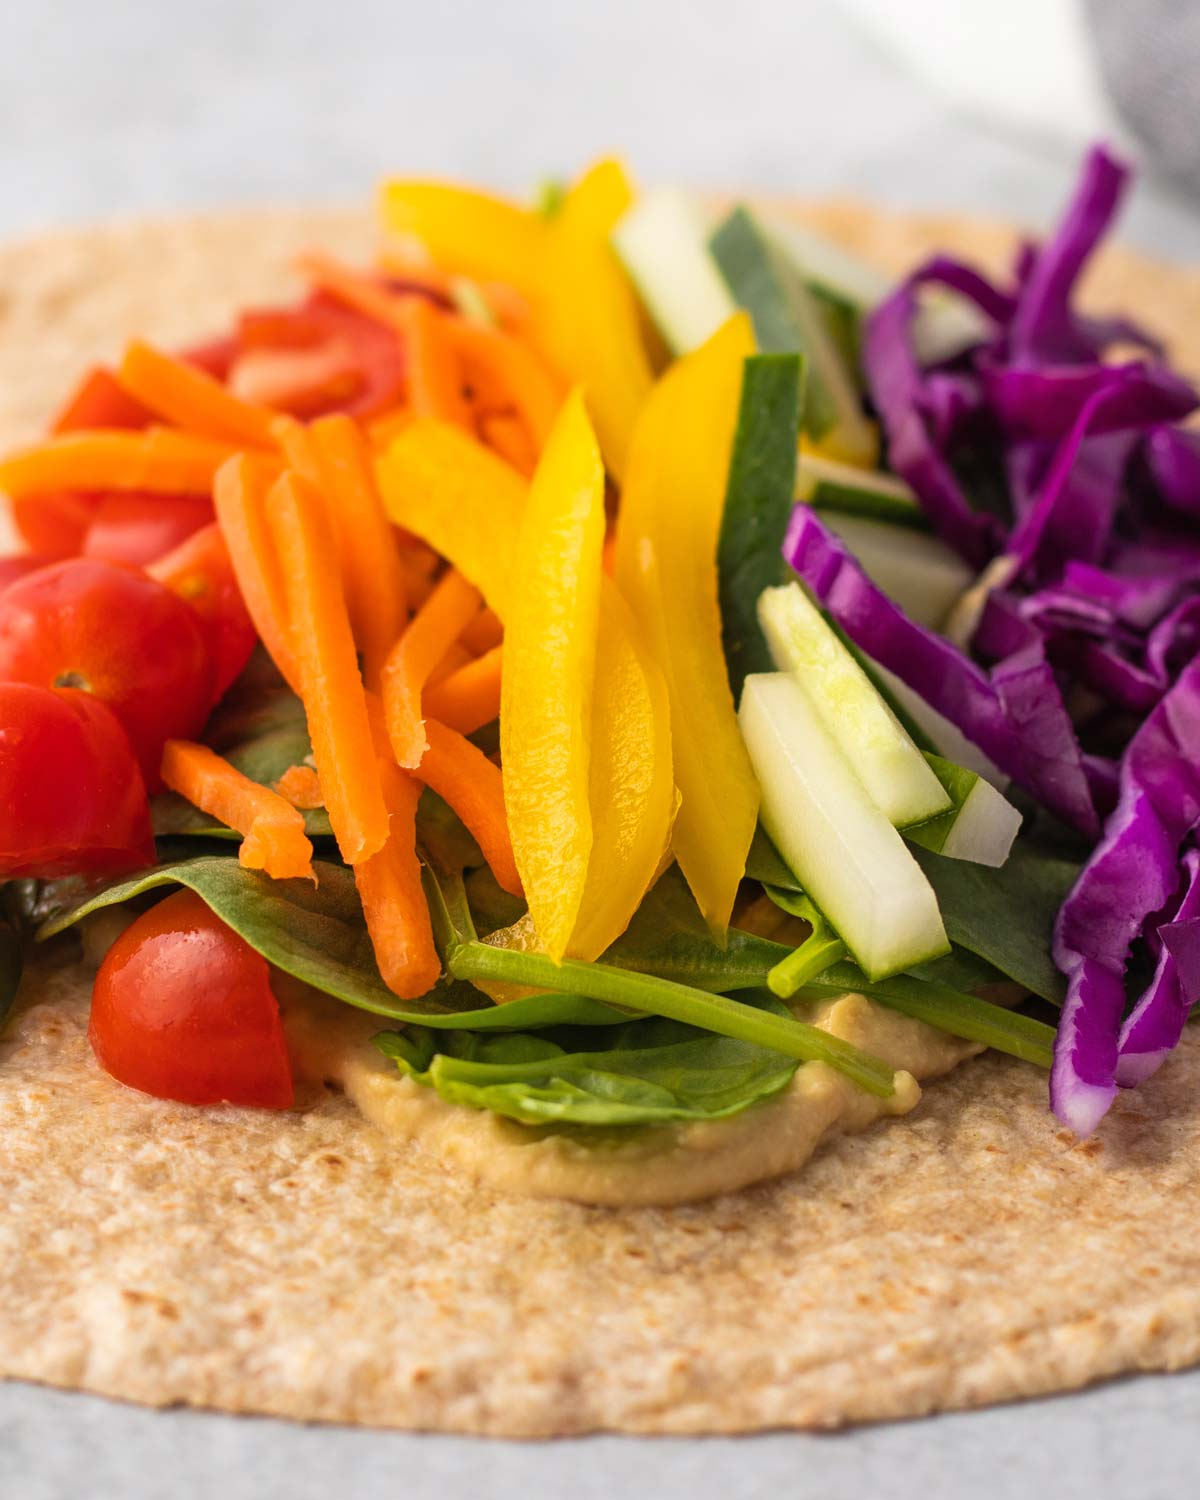 a wrap topped with hummus, carrots, peppers and other vegetables